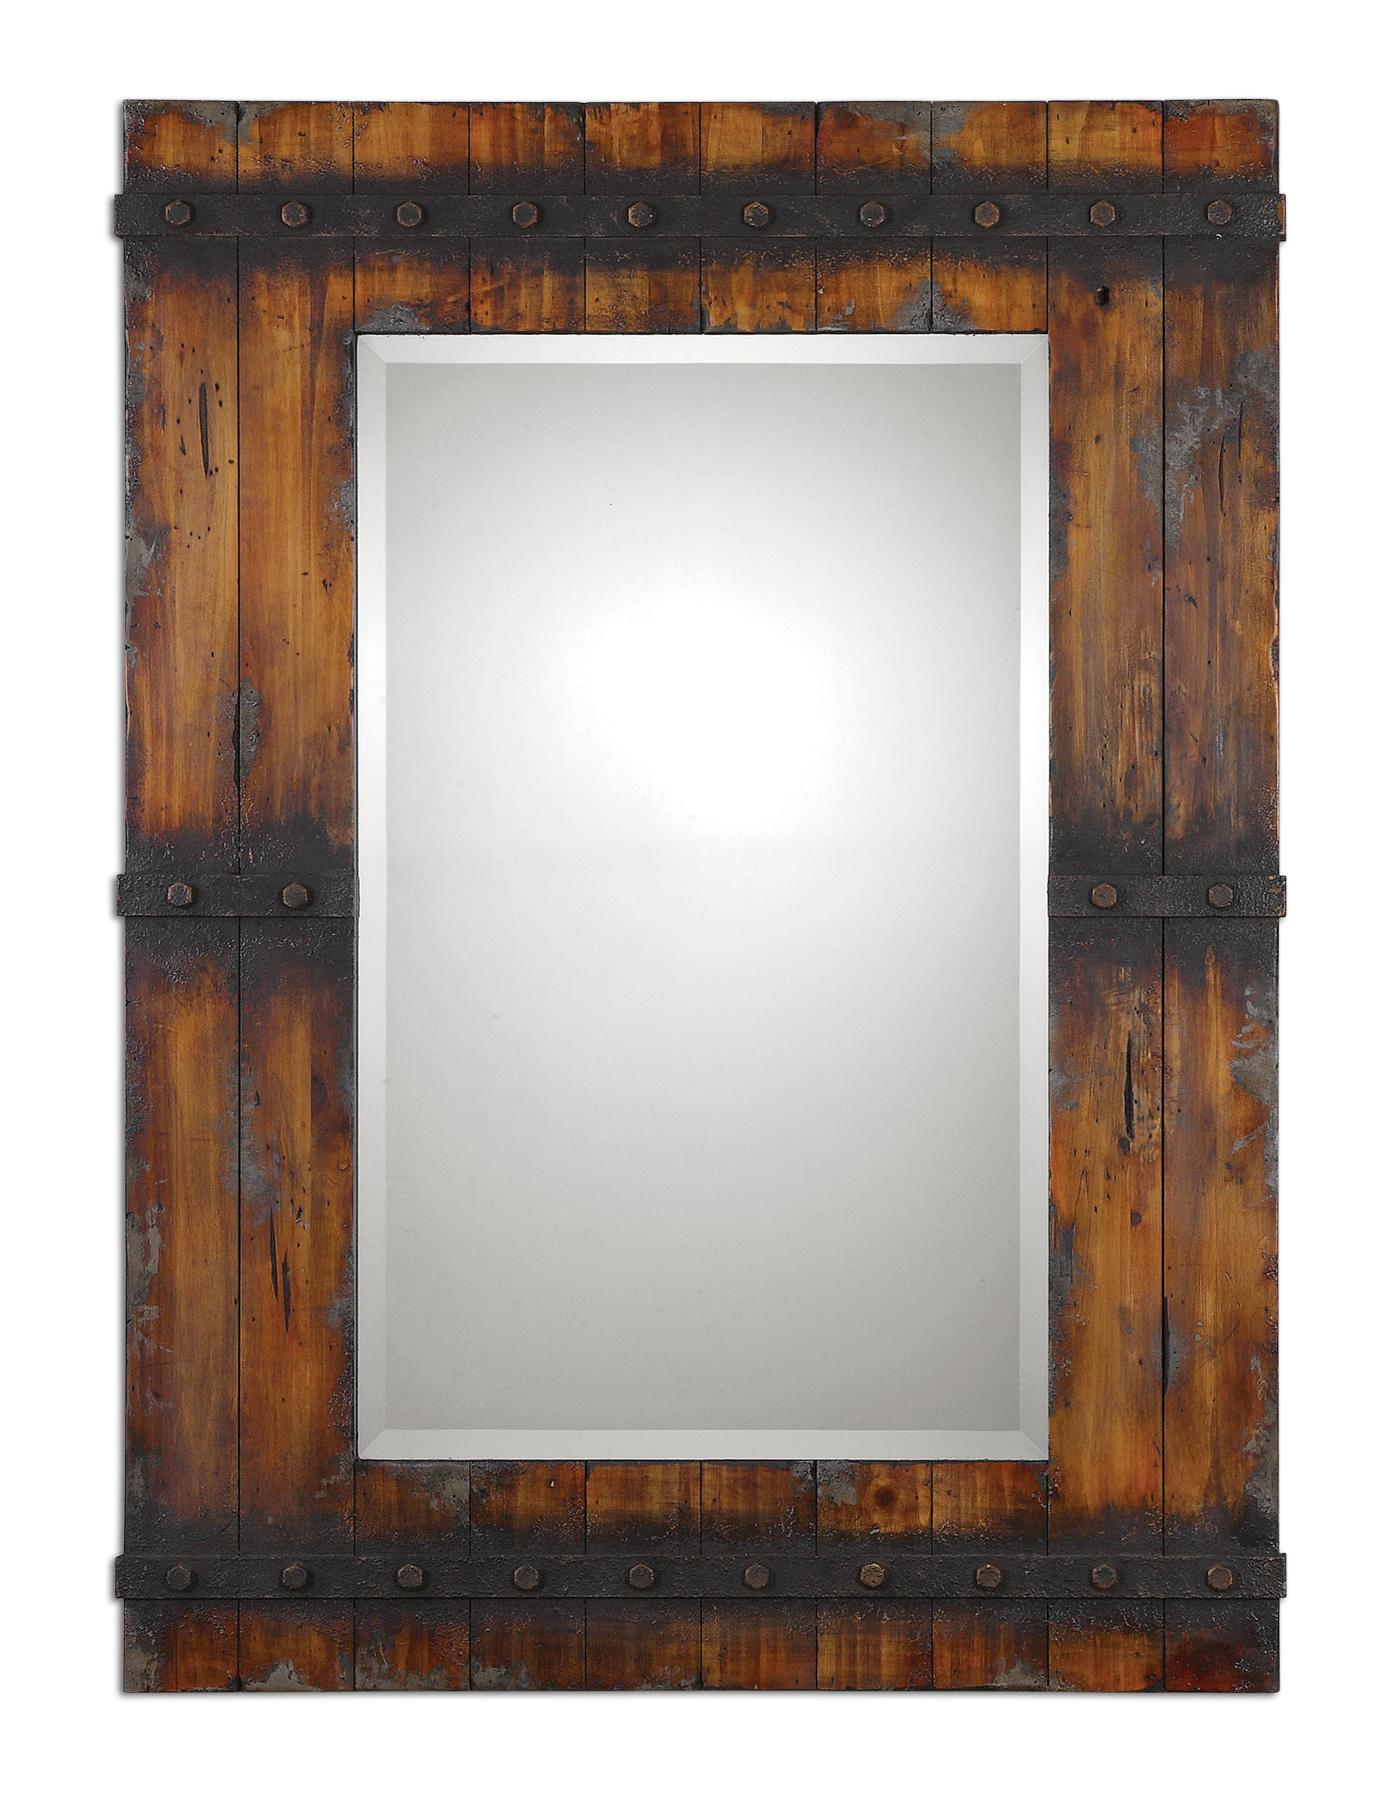 Uttermost Mirrors Stockley - Item Number: 13804